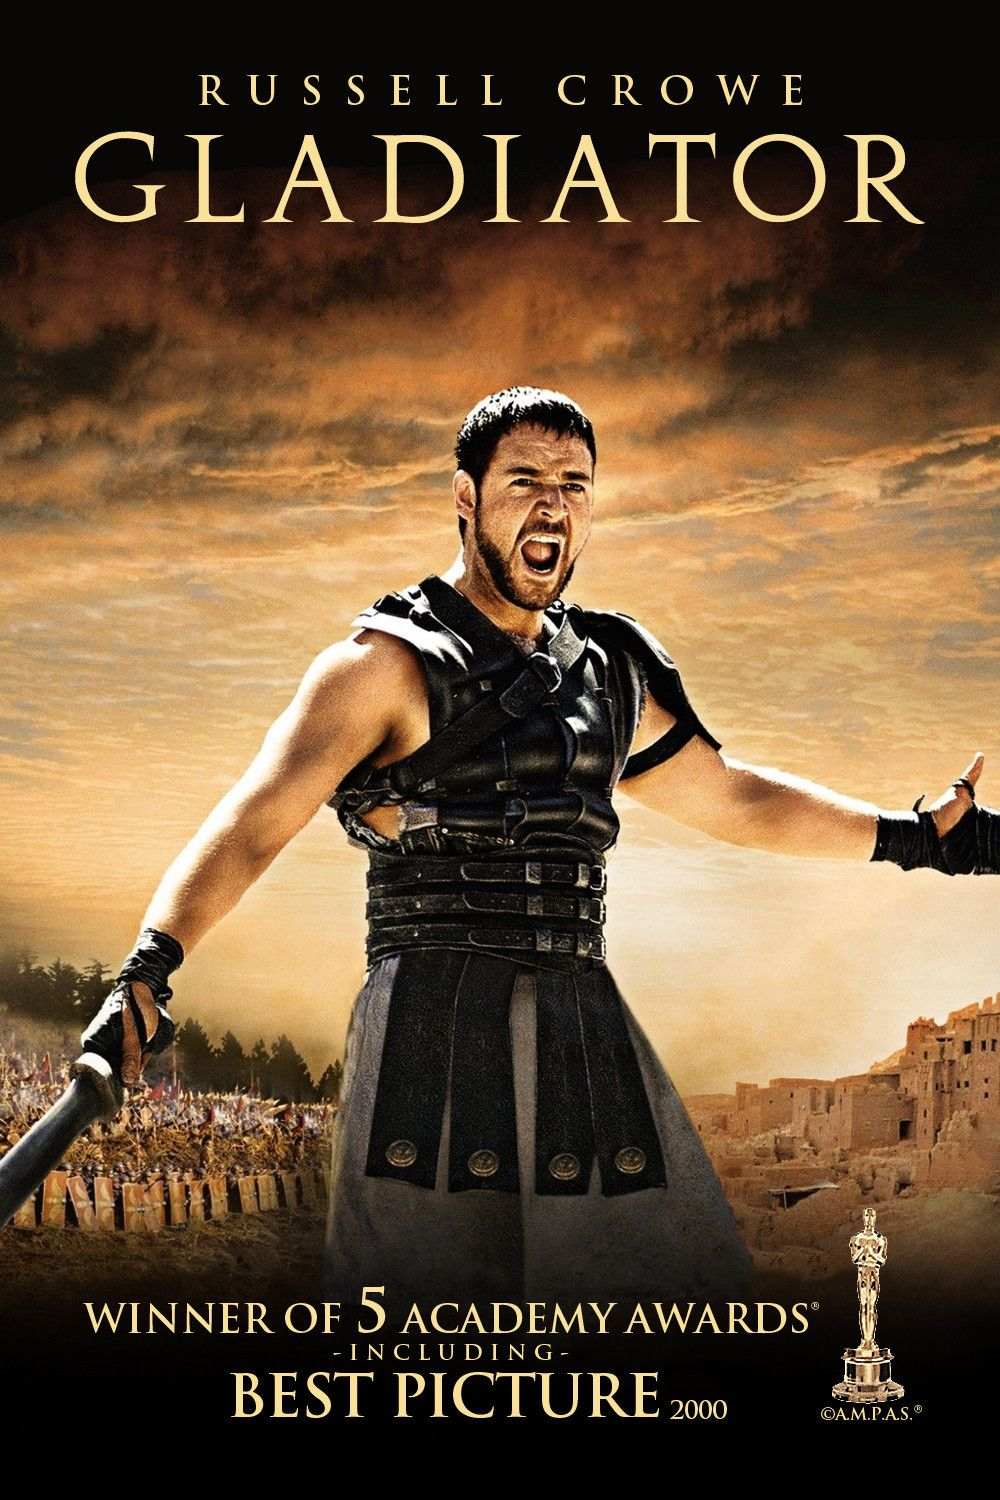 Pin By Sonitta On Movies I Watched Gladiator Movie Movie Tv Good Movies